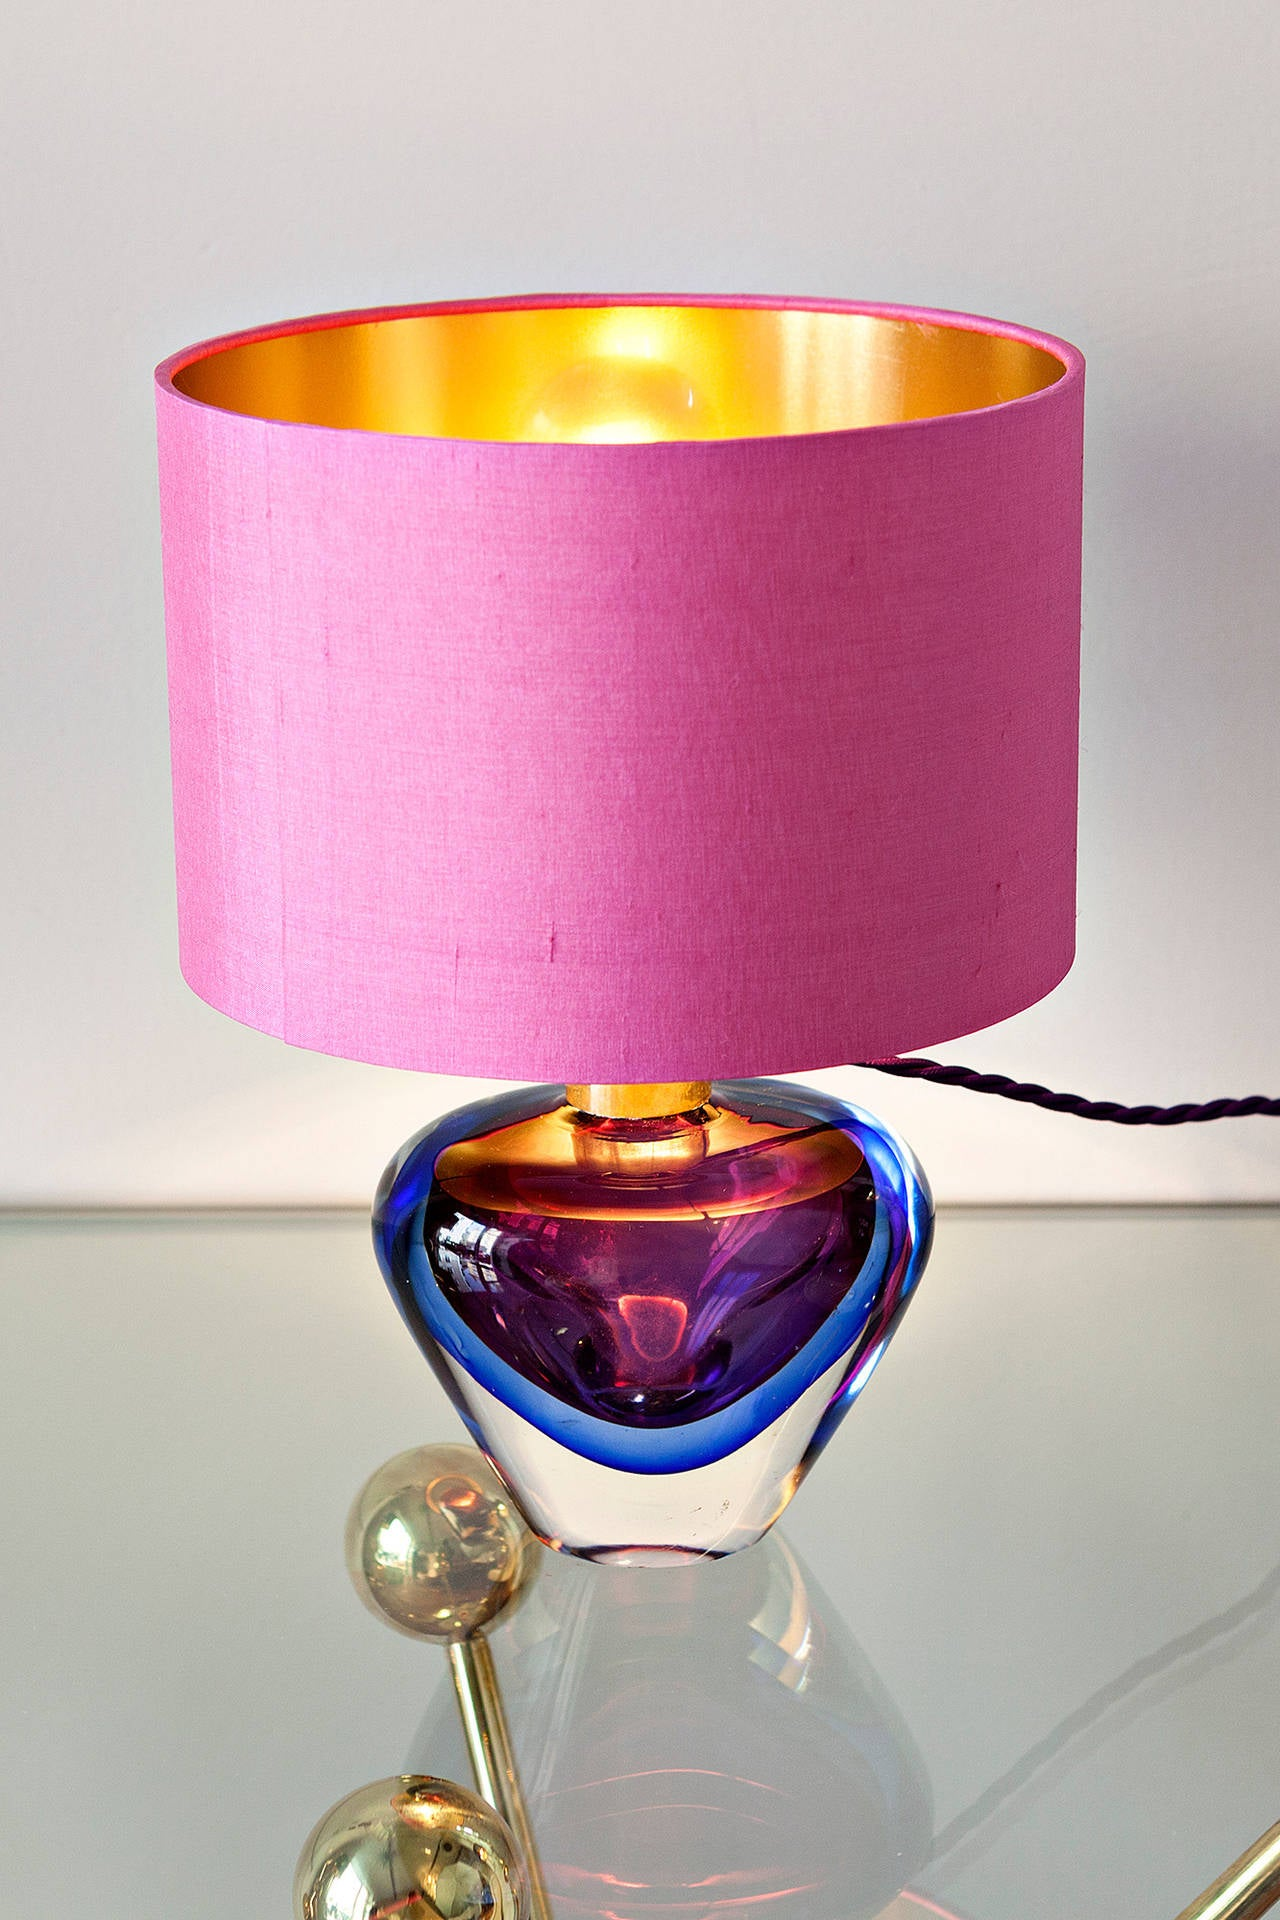 Very elegant Table lamp by Flavio Poli for Seguso Murano Italy circa 1950, very heavy blown Murano glass in fantastic purple and pink color, new Dupion silk shade inside golden.